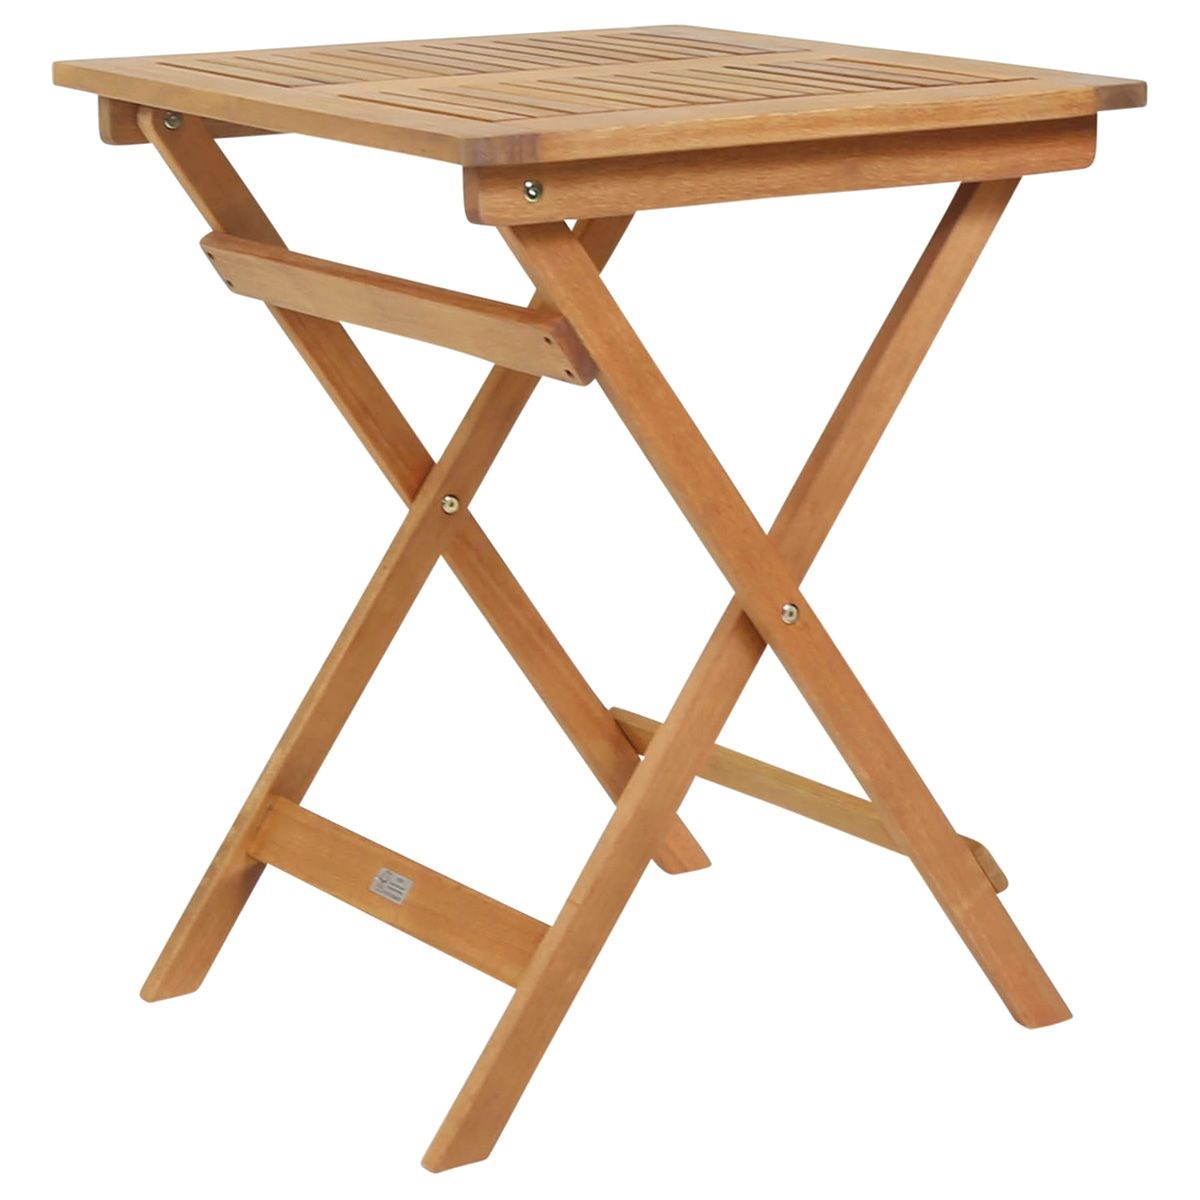 Medium Garden Wooden Side Table Folding